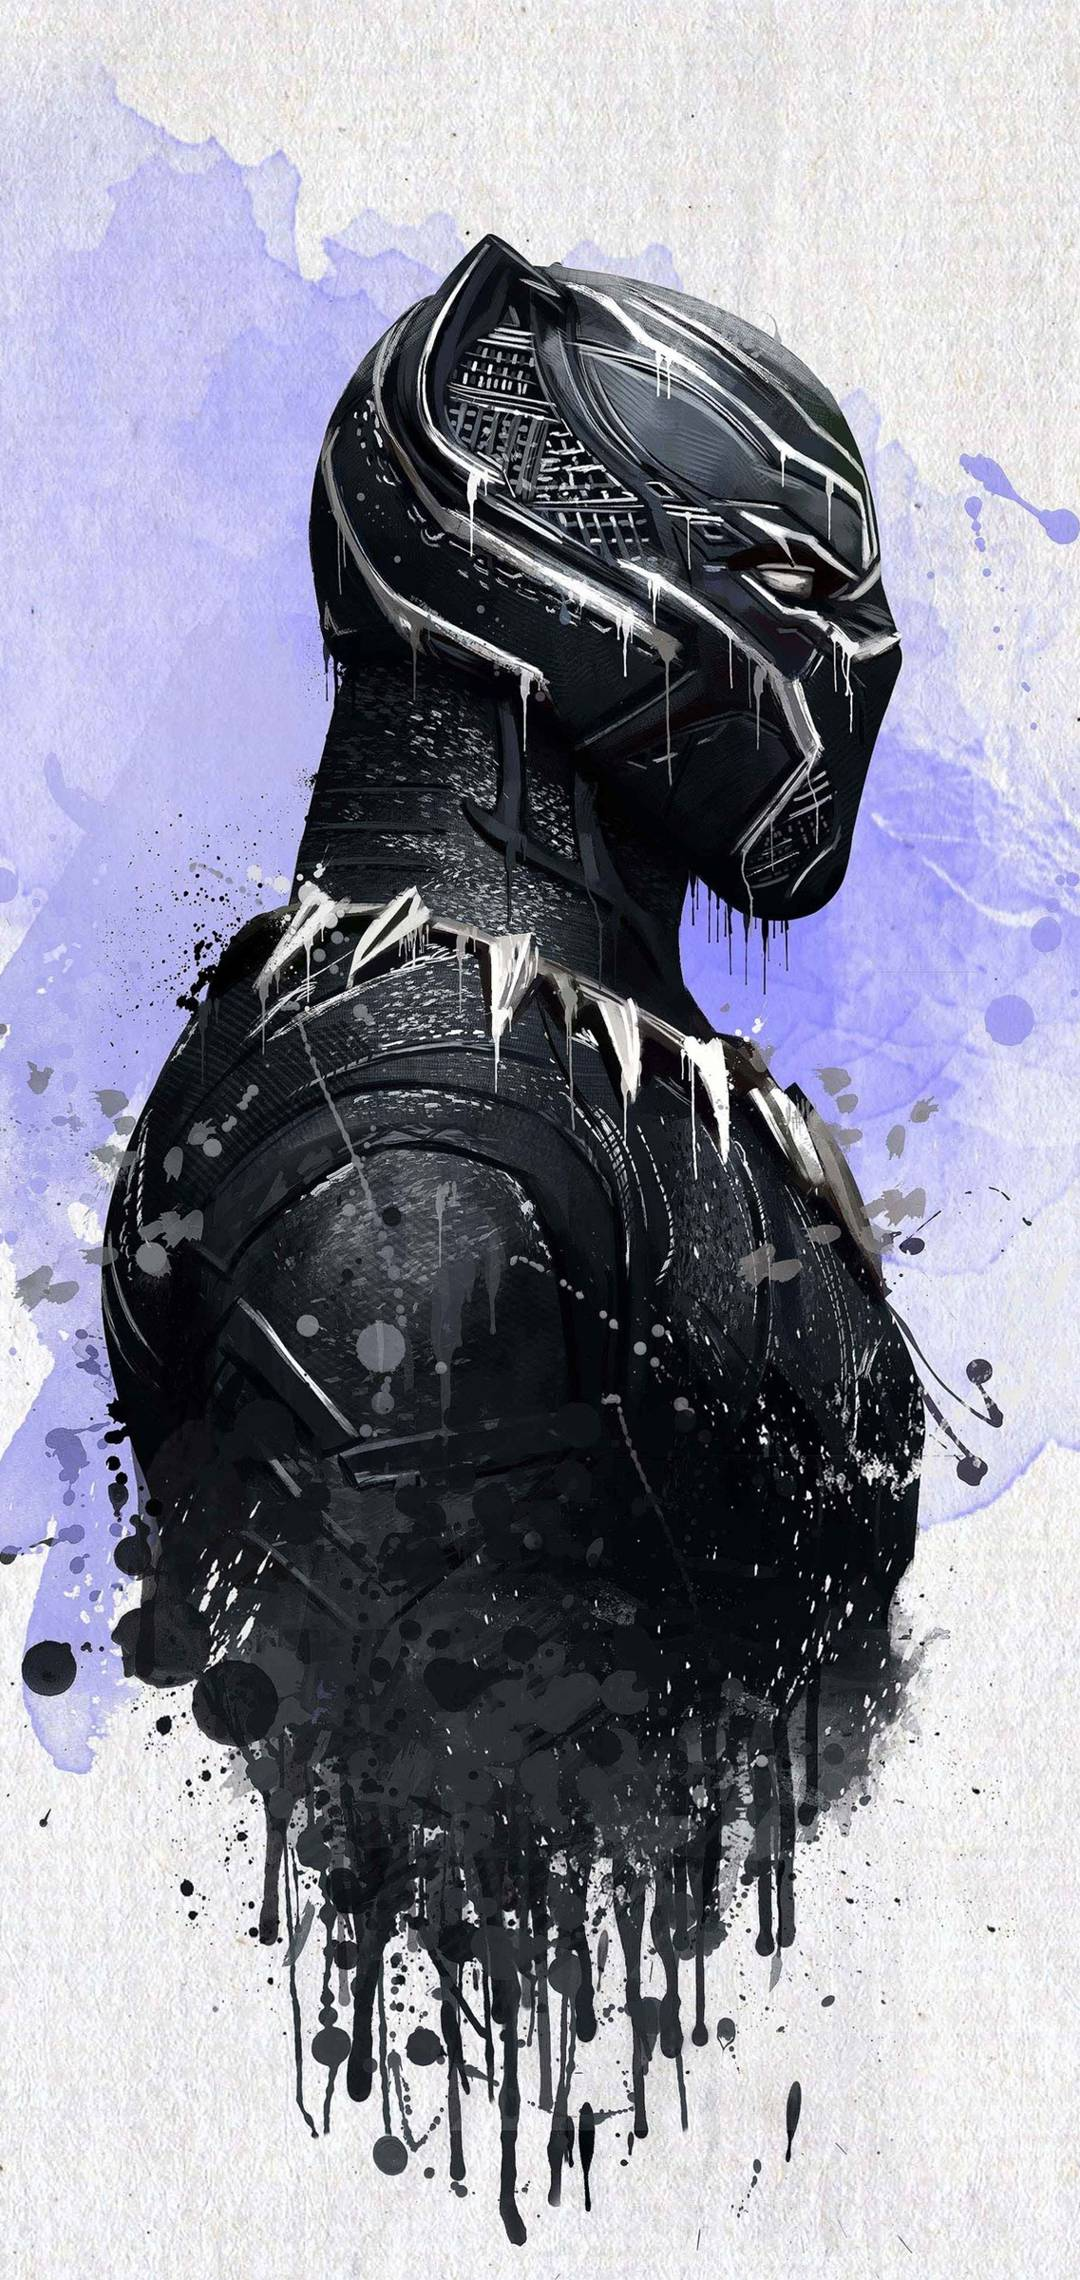 Top 100 Best Black Panther Wallpapers For Mobile By Wallpaperking